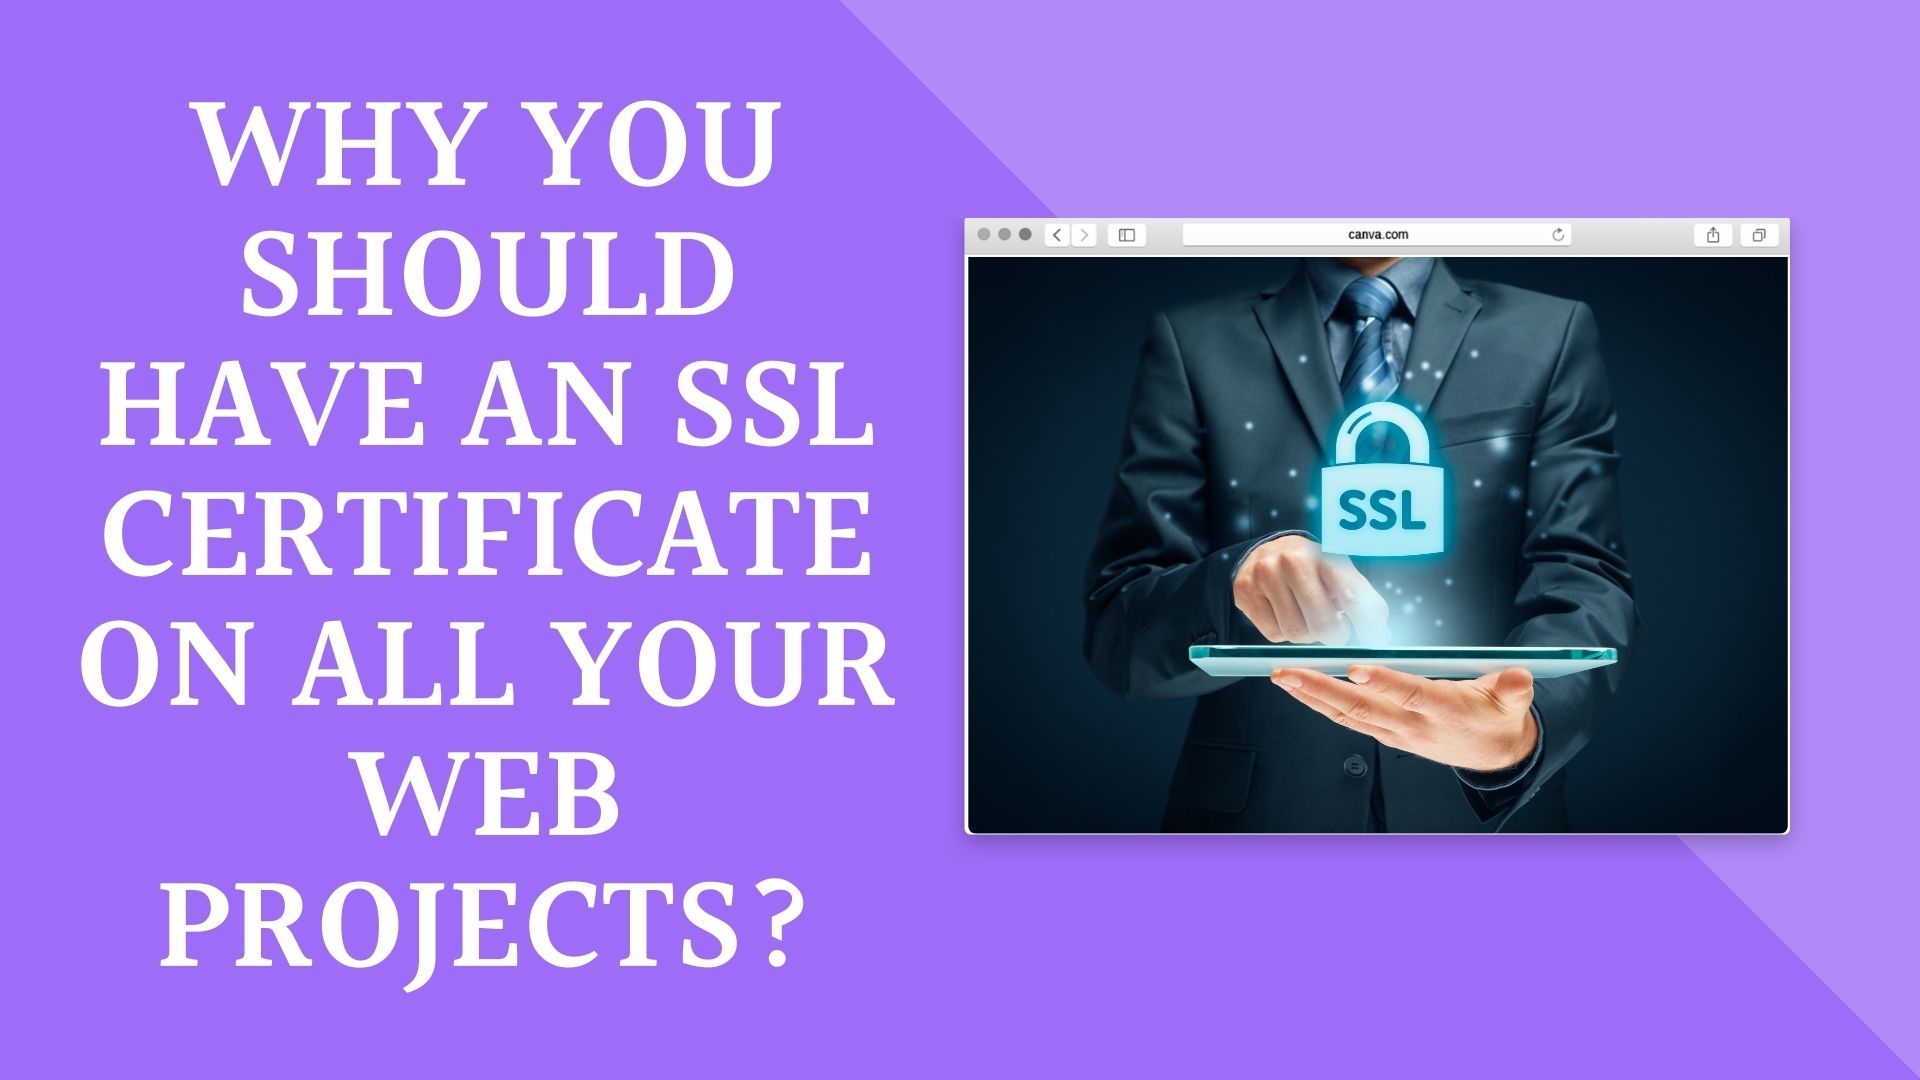 Why you should have an SSL certificate on all your web projects?